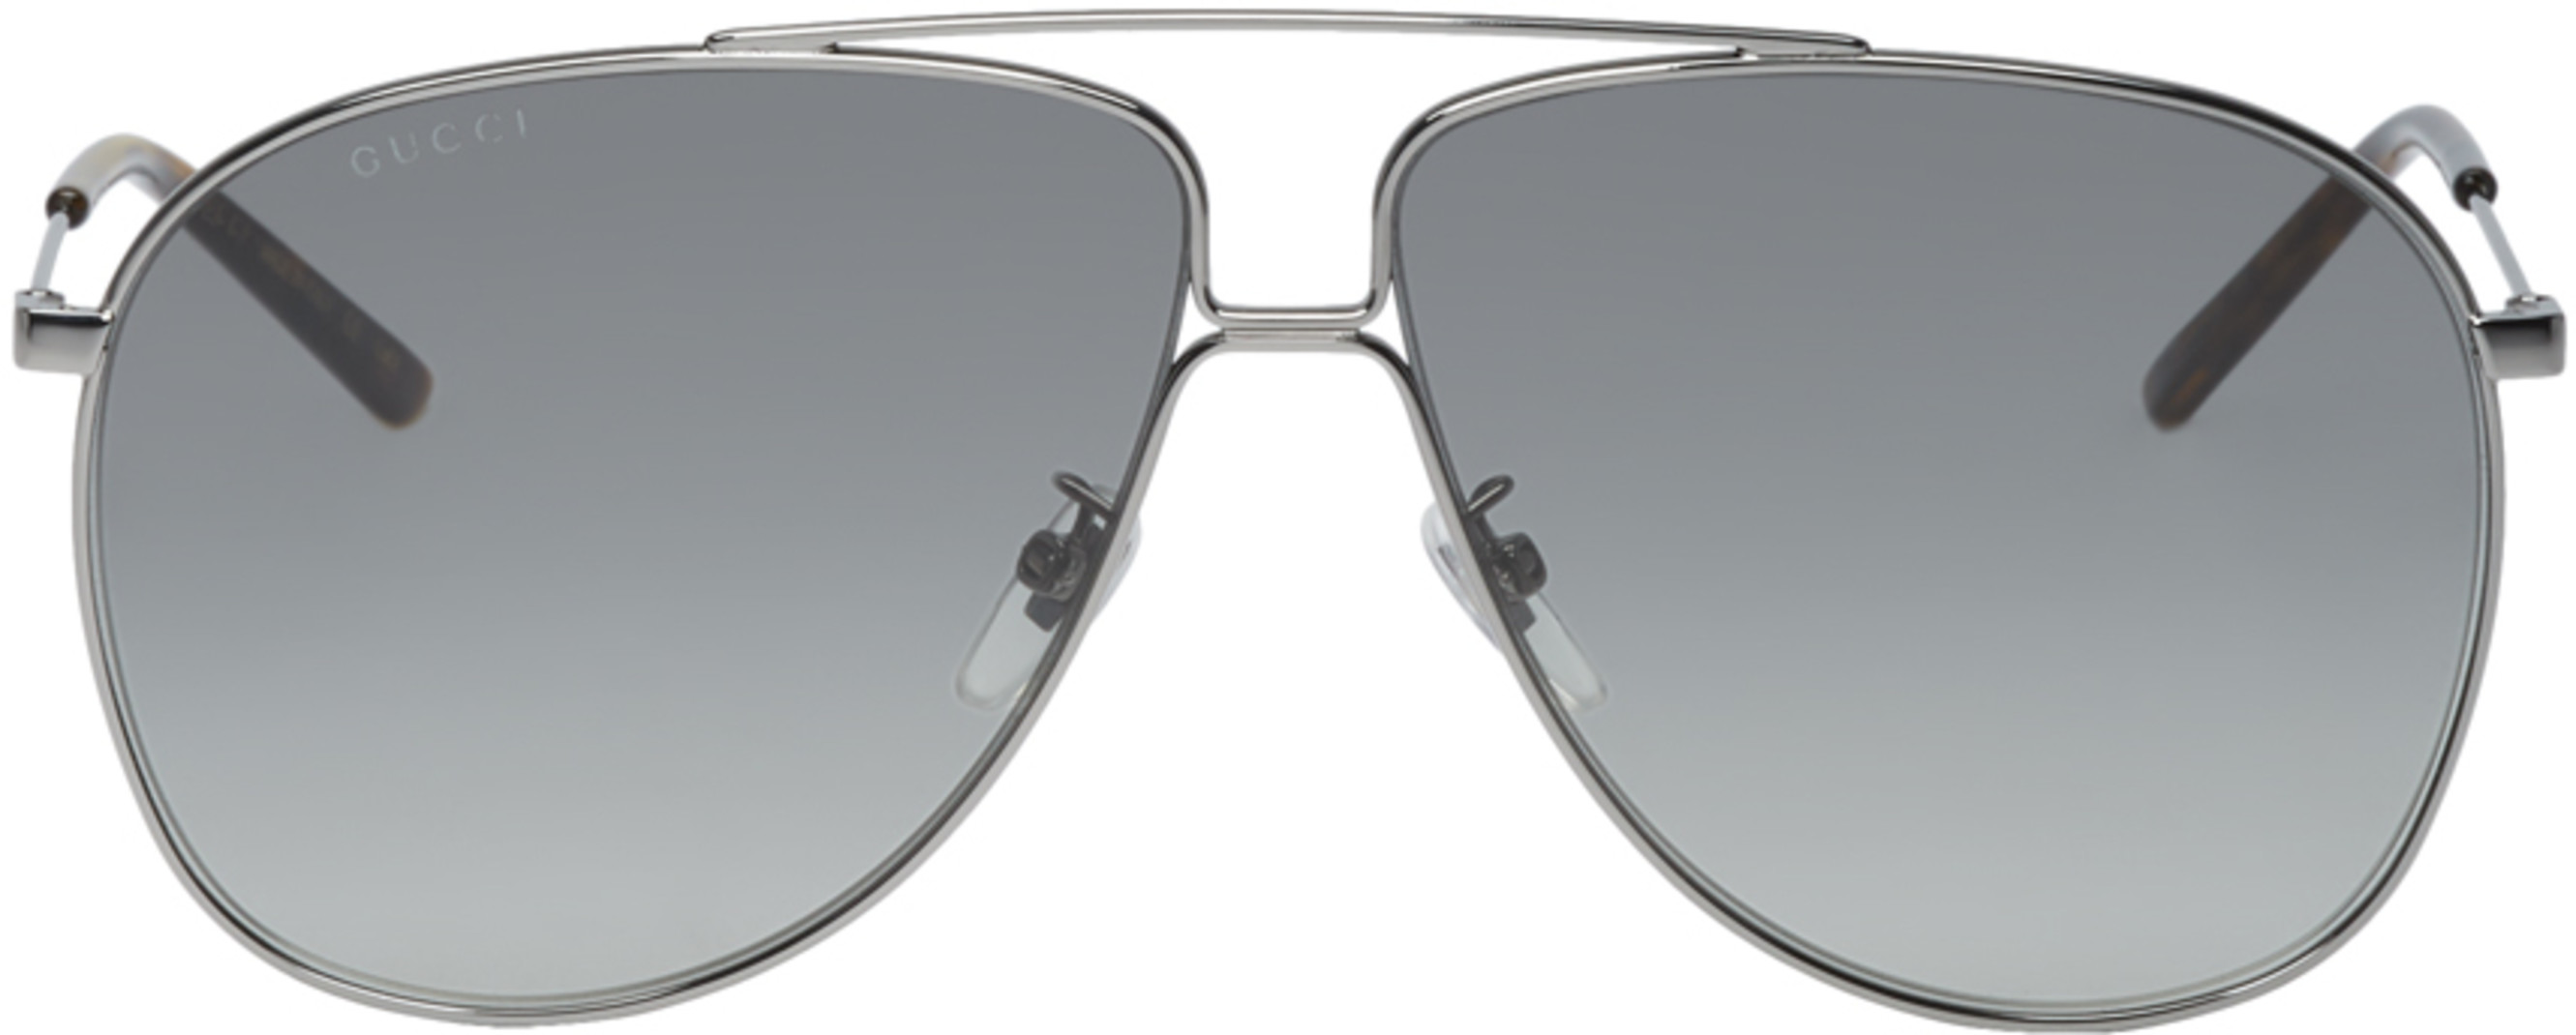 6b64b0b7256eb Gucci eyewear for Men